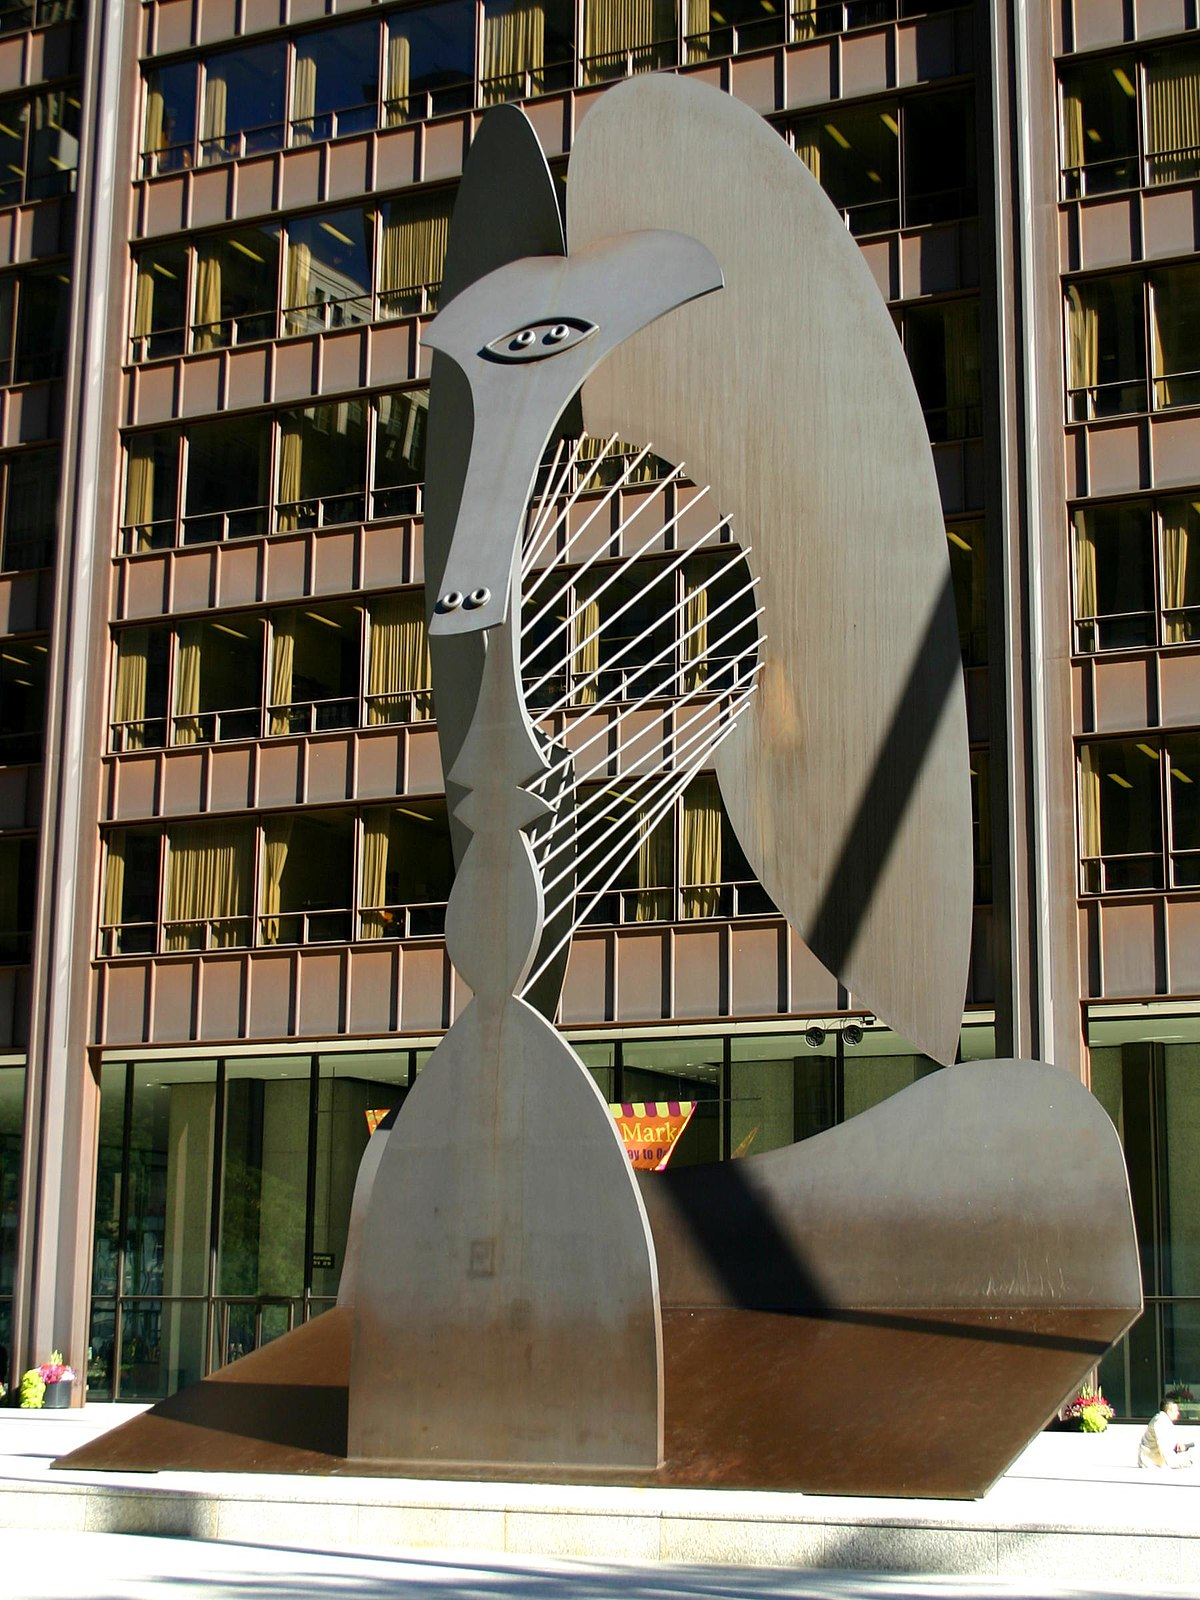 chicago sculpture by pablo picasso